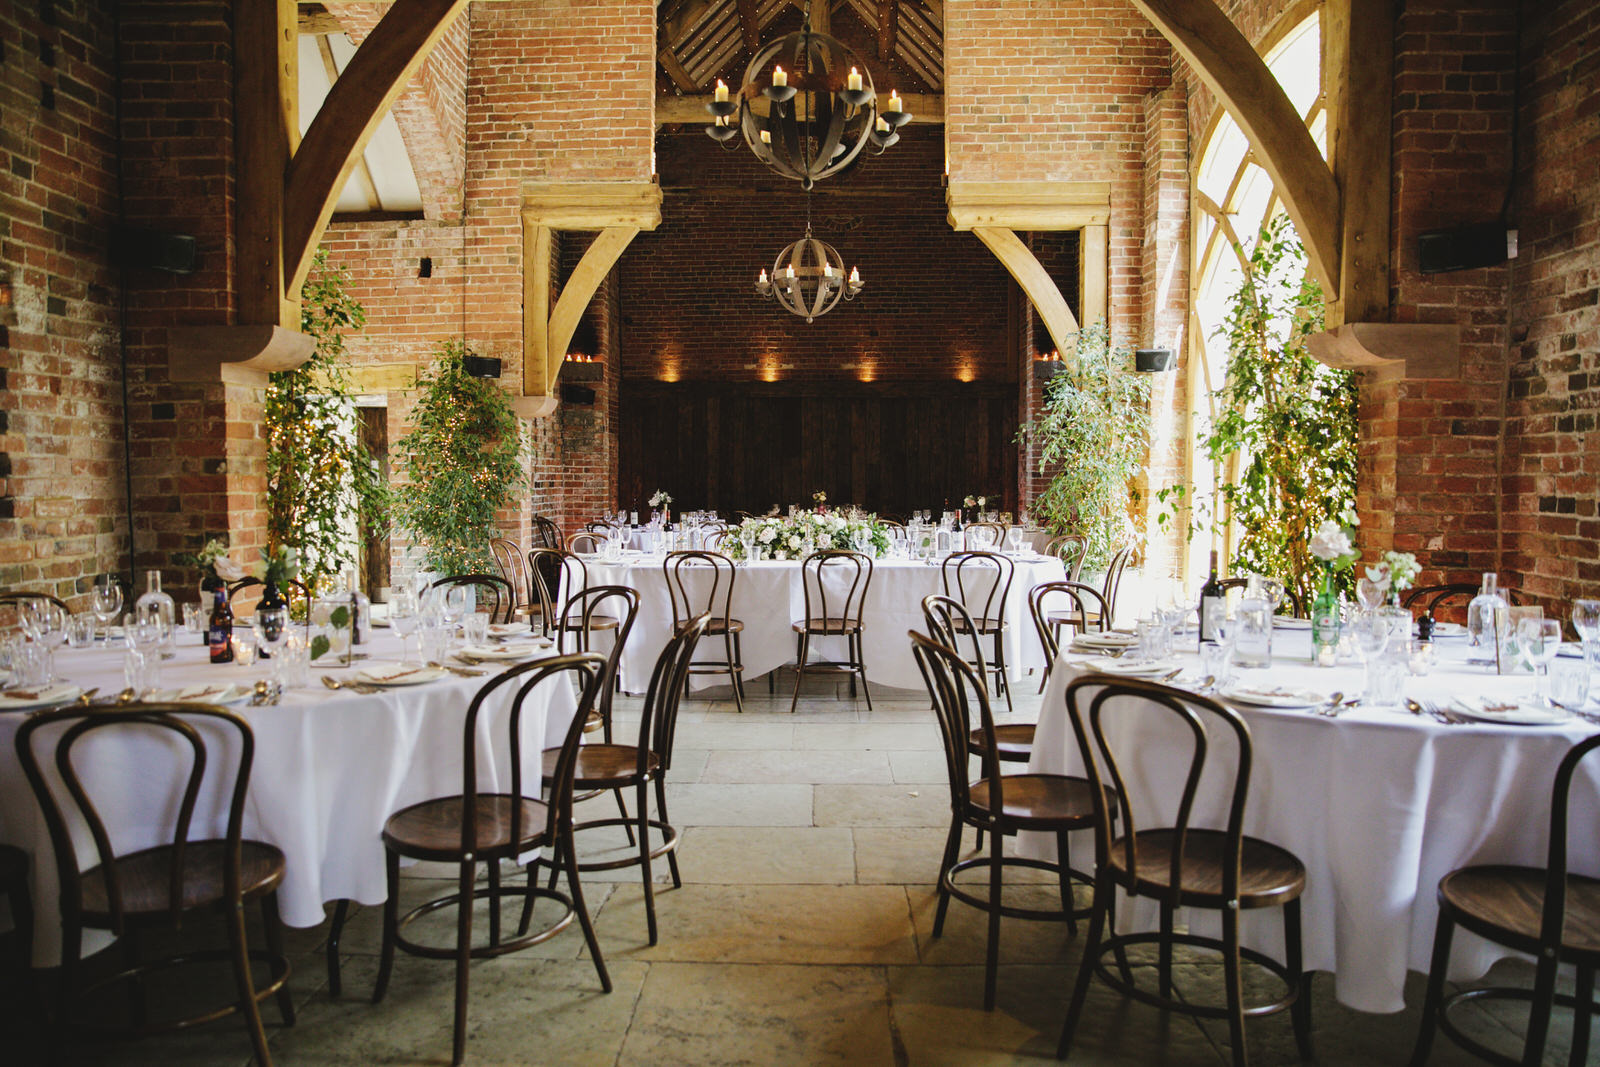 Shustoke-Gemma Williams-4.5.19-Lucy & Ryan412cshustoke+barn+warwickshire+wedding+venue.jpg